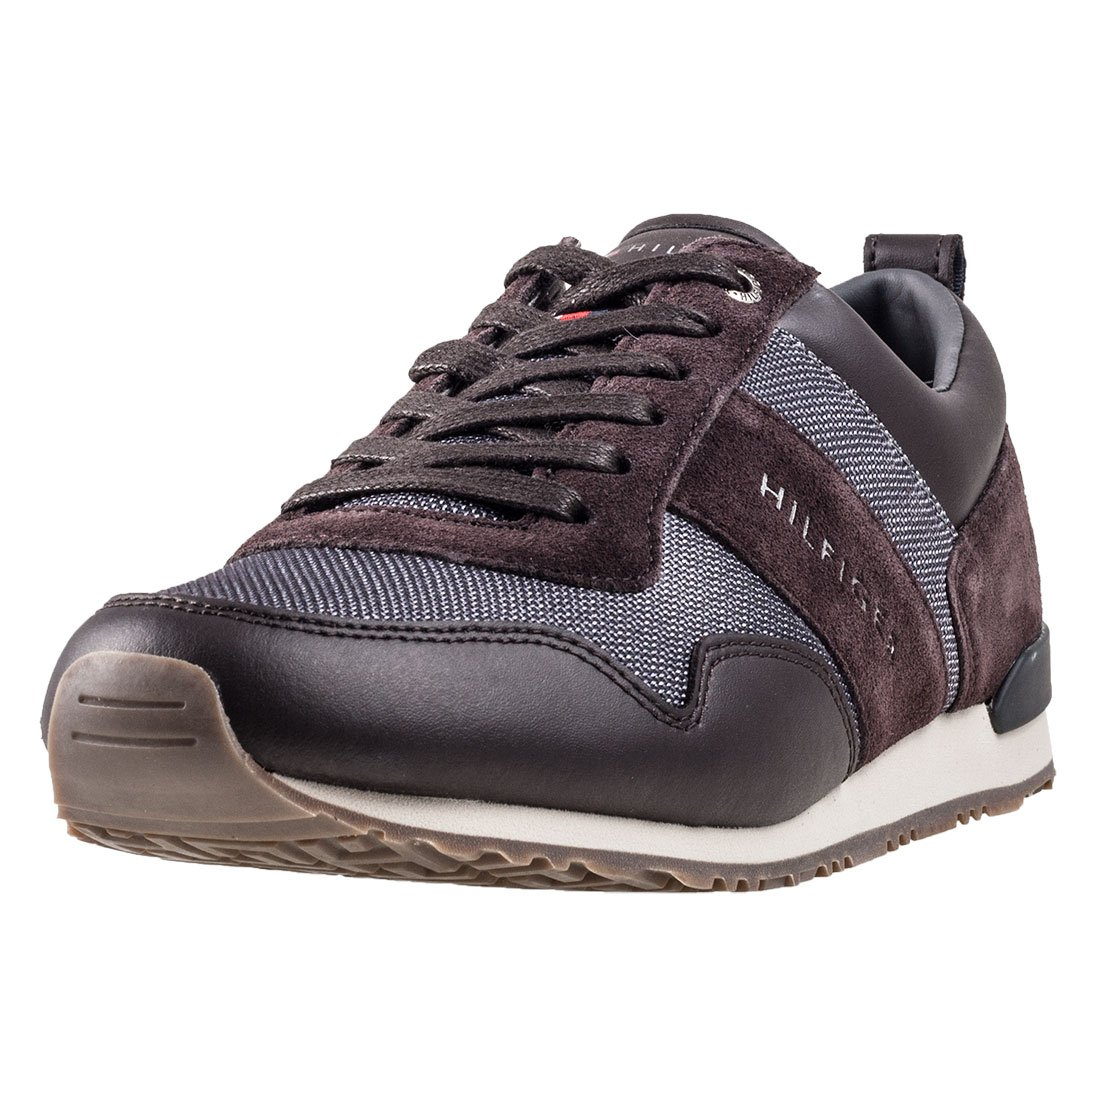 aaa062f3495b Tommy Hilfiger Maxwell 11c6 Mens Trainers Coffee Bean - 46 EU   Amazon.co.uk  Shoes   Bags